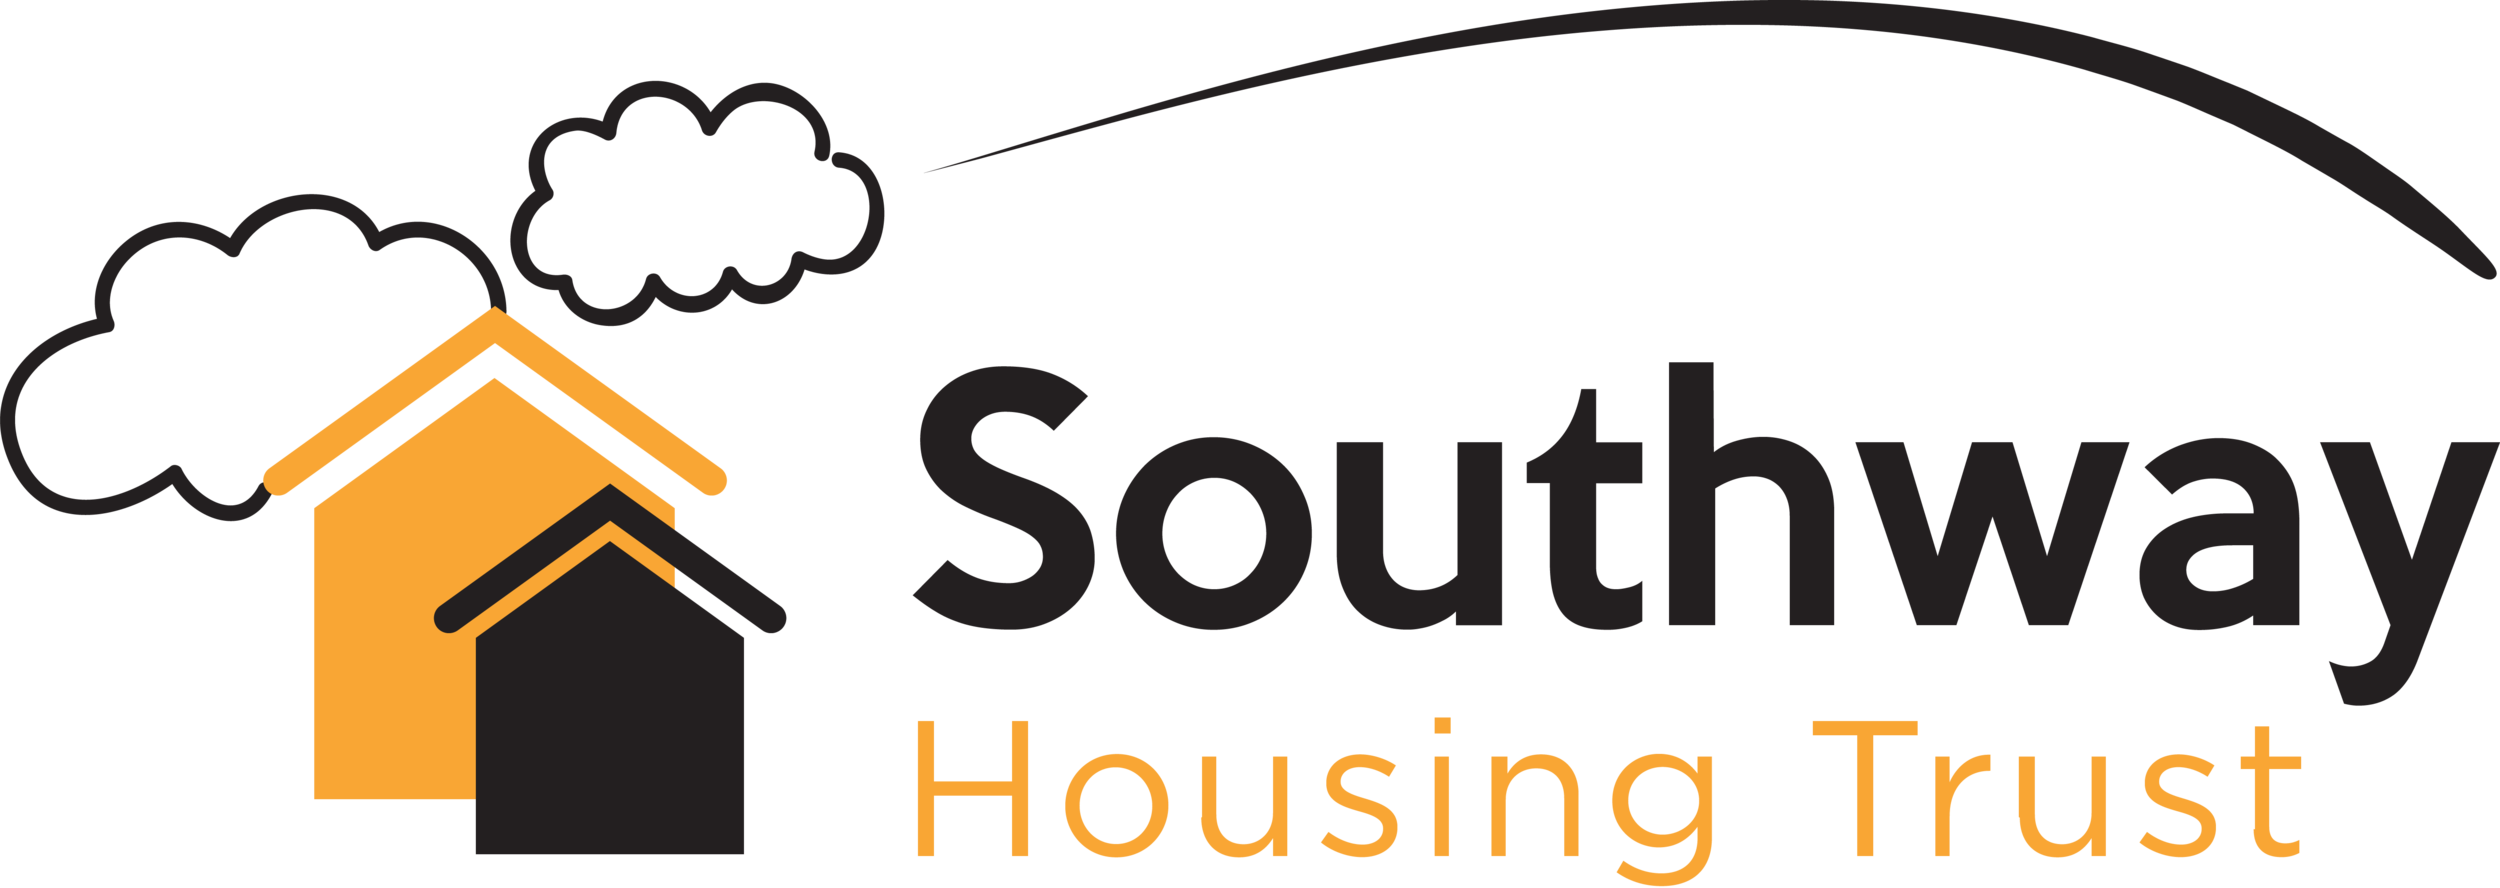 Southway Housing Trust.png